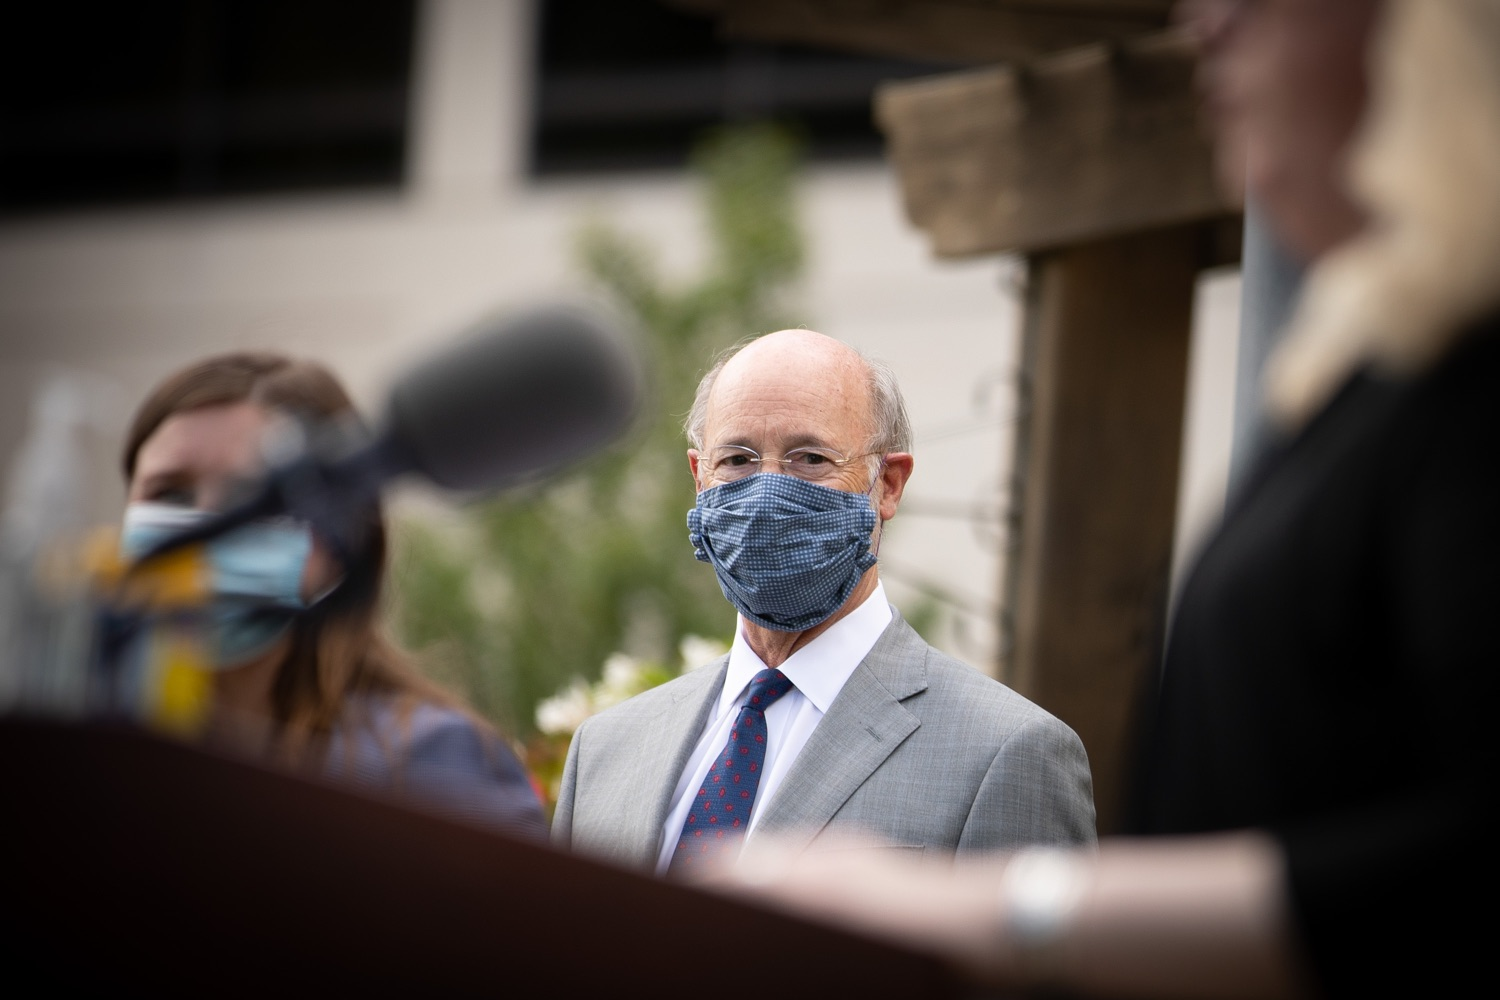 """<a href=""""https://filesource.wostreaming.net/commonwealthofpa/photo/18093_gov-healthcare_workers_dz_17.jpg"""" target=""""_blank"""">⇣Download Photo<br></a>Pennsylvania Governor Tom Wolf listening to speakers during his visit to Milton S. Hershey Medical Center.  As the commonwealth continues its measured, phased reopening and COVID-19 case counts continue to decline, Governor Tom Wolf visited Penn State Milton S. Hershey Medical Center today to thank staff and learn more about how the facility is handling the pandemic and preparing for a possible resurgence in the fall.  Harrisburg, PA  June 24, 2020"""